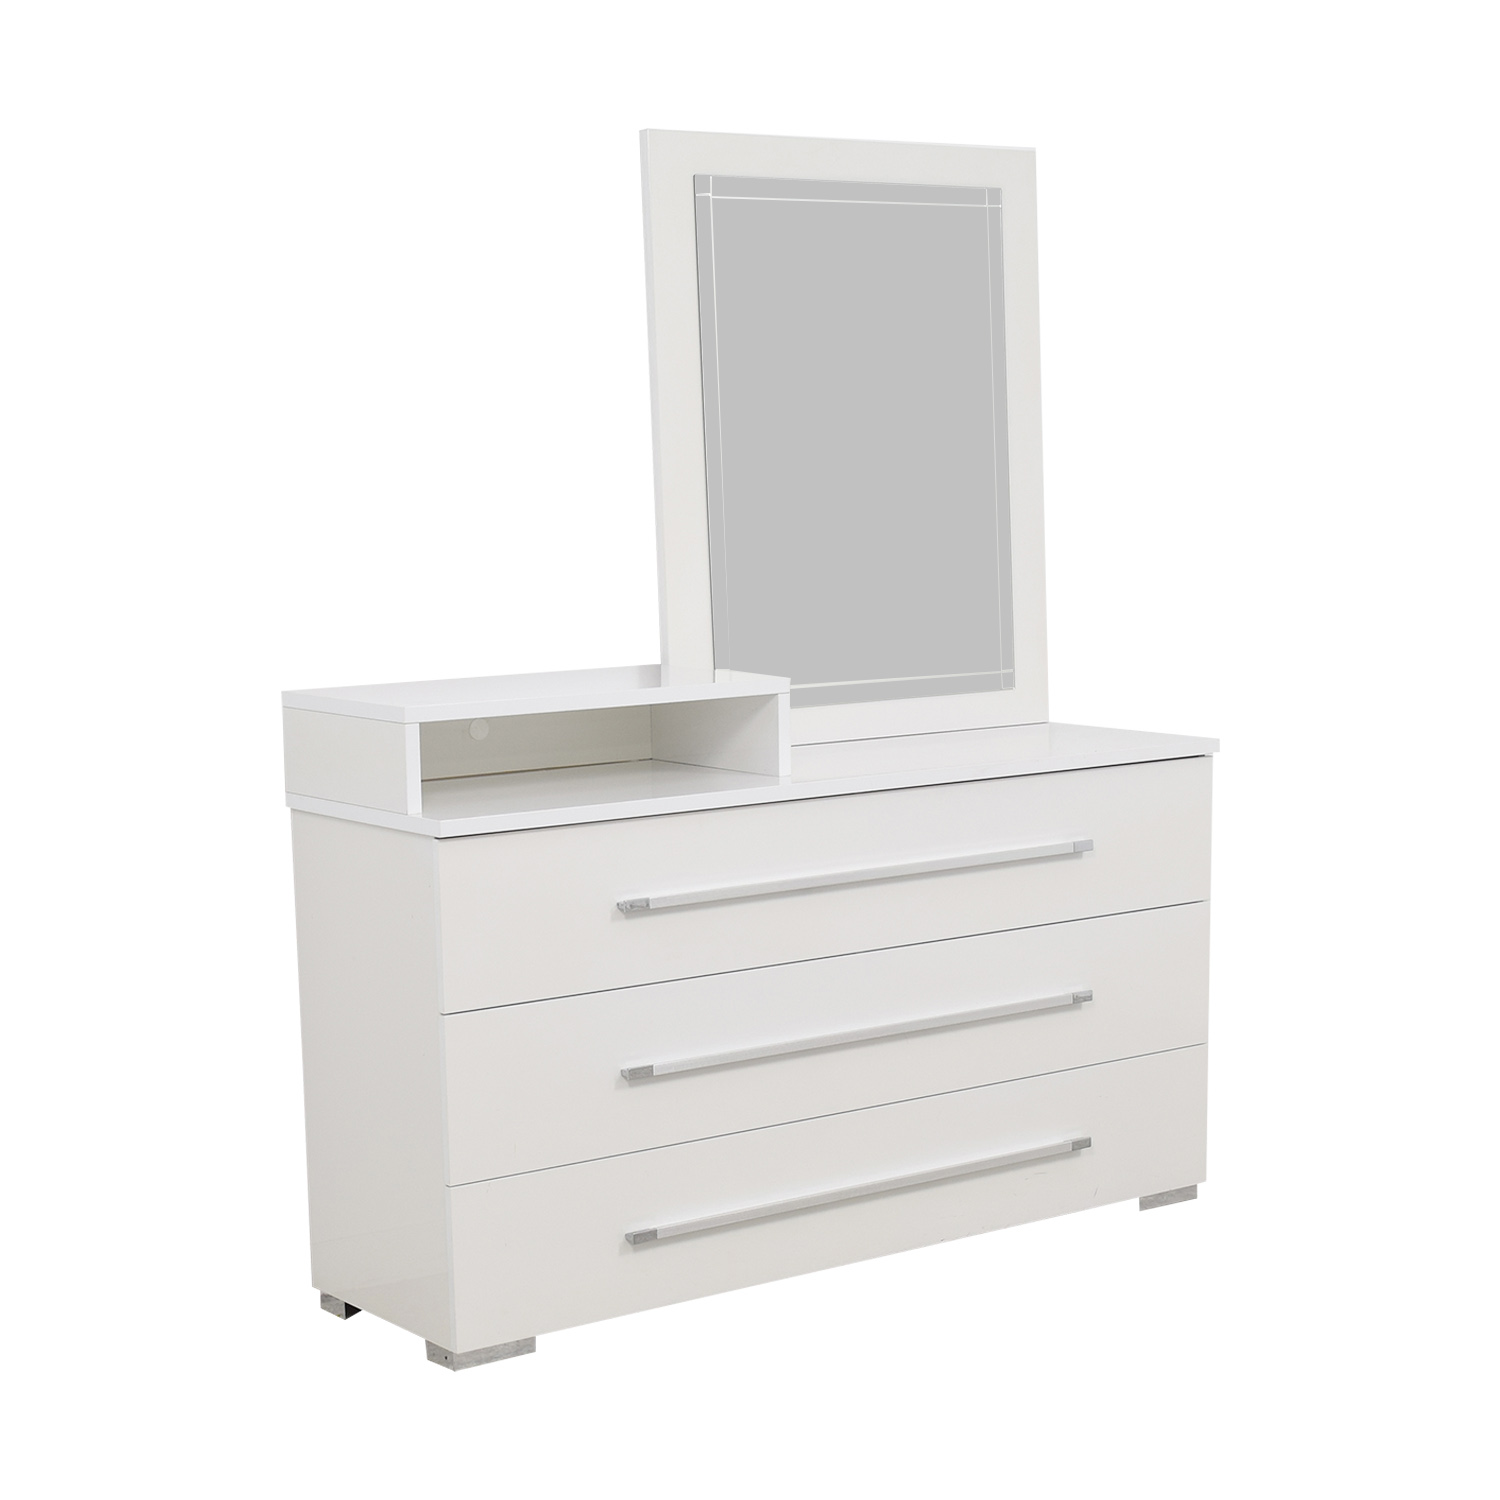 shop Value City Furniture White Dresser with Deck and Mirror Value City Furniture Sofas